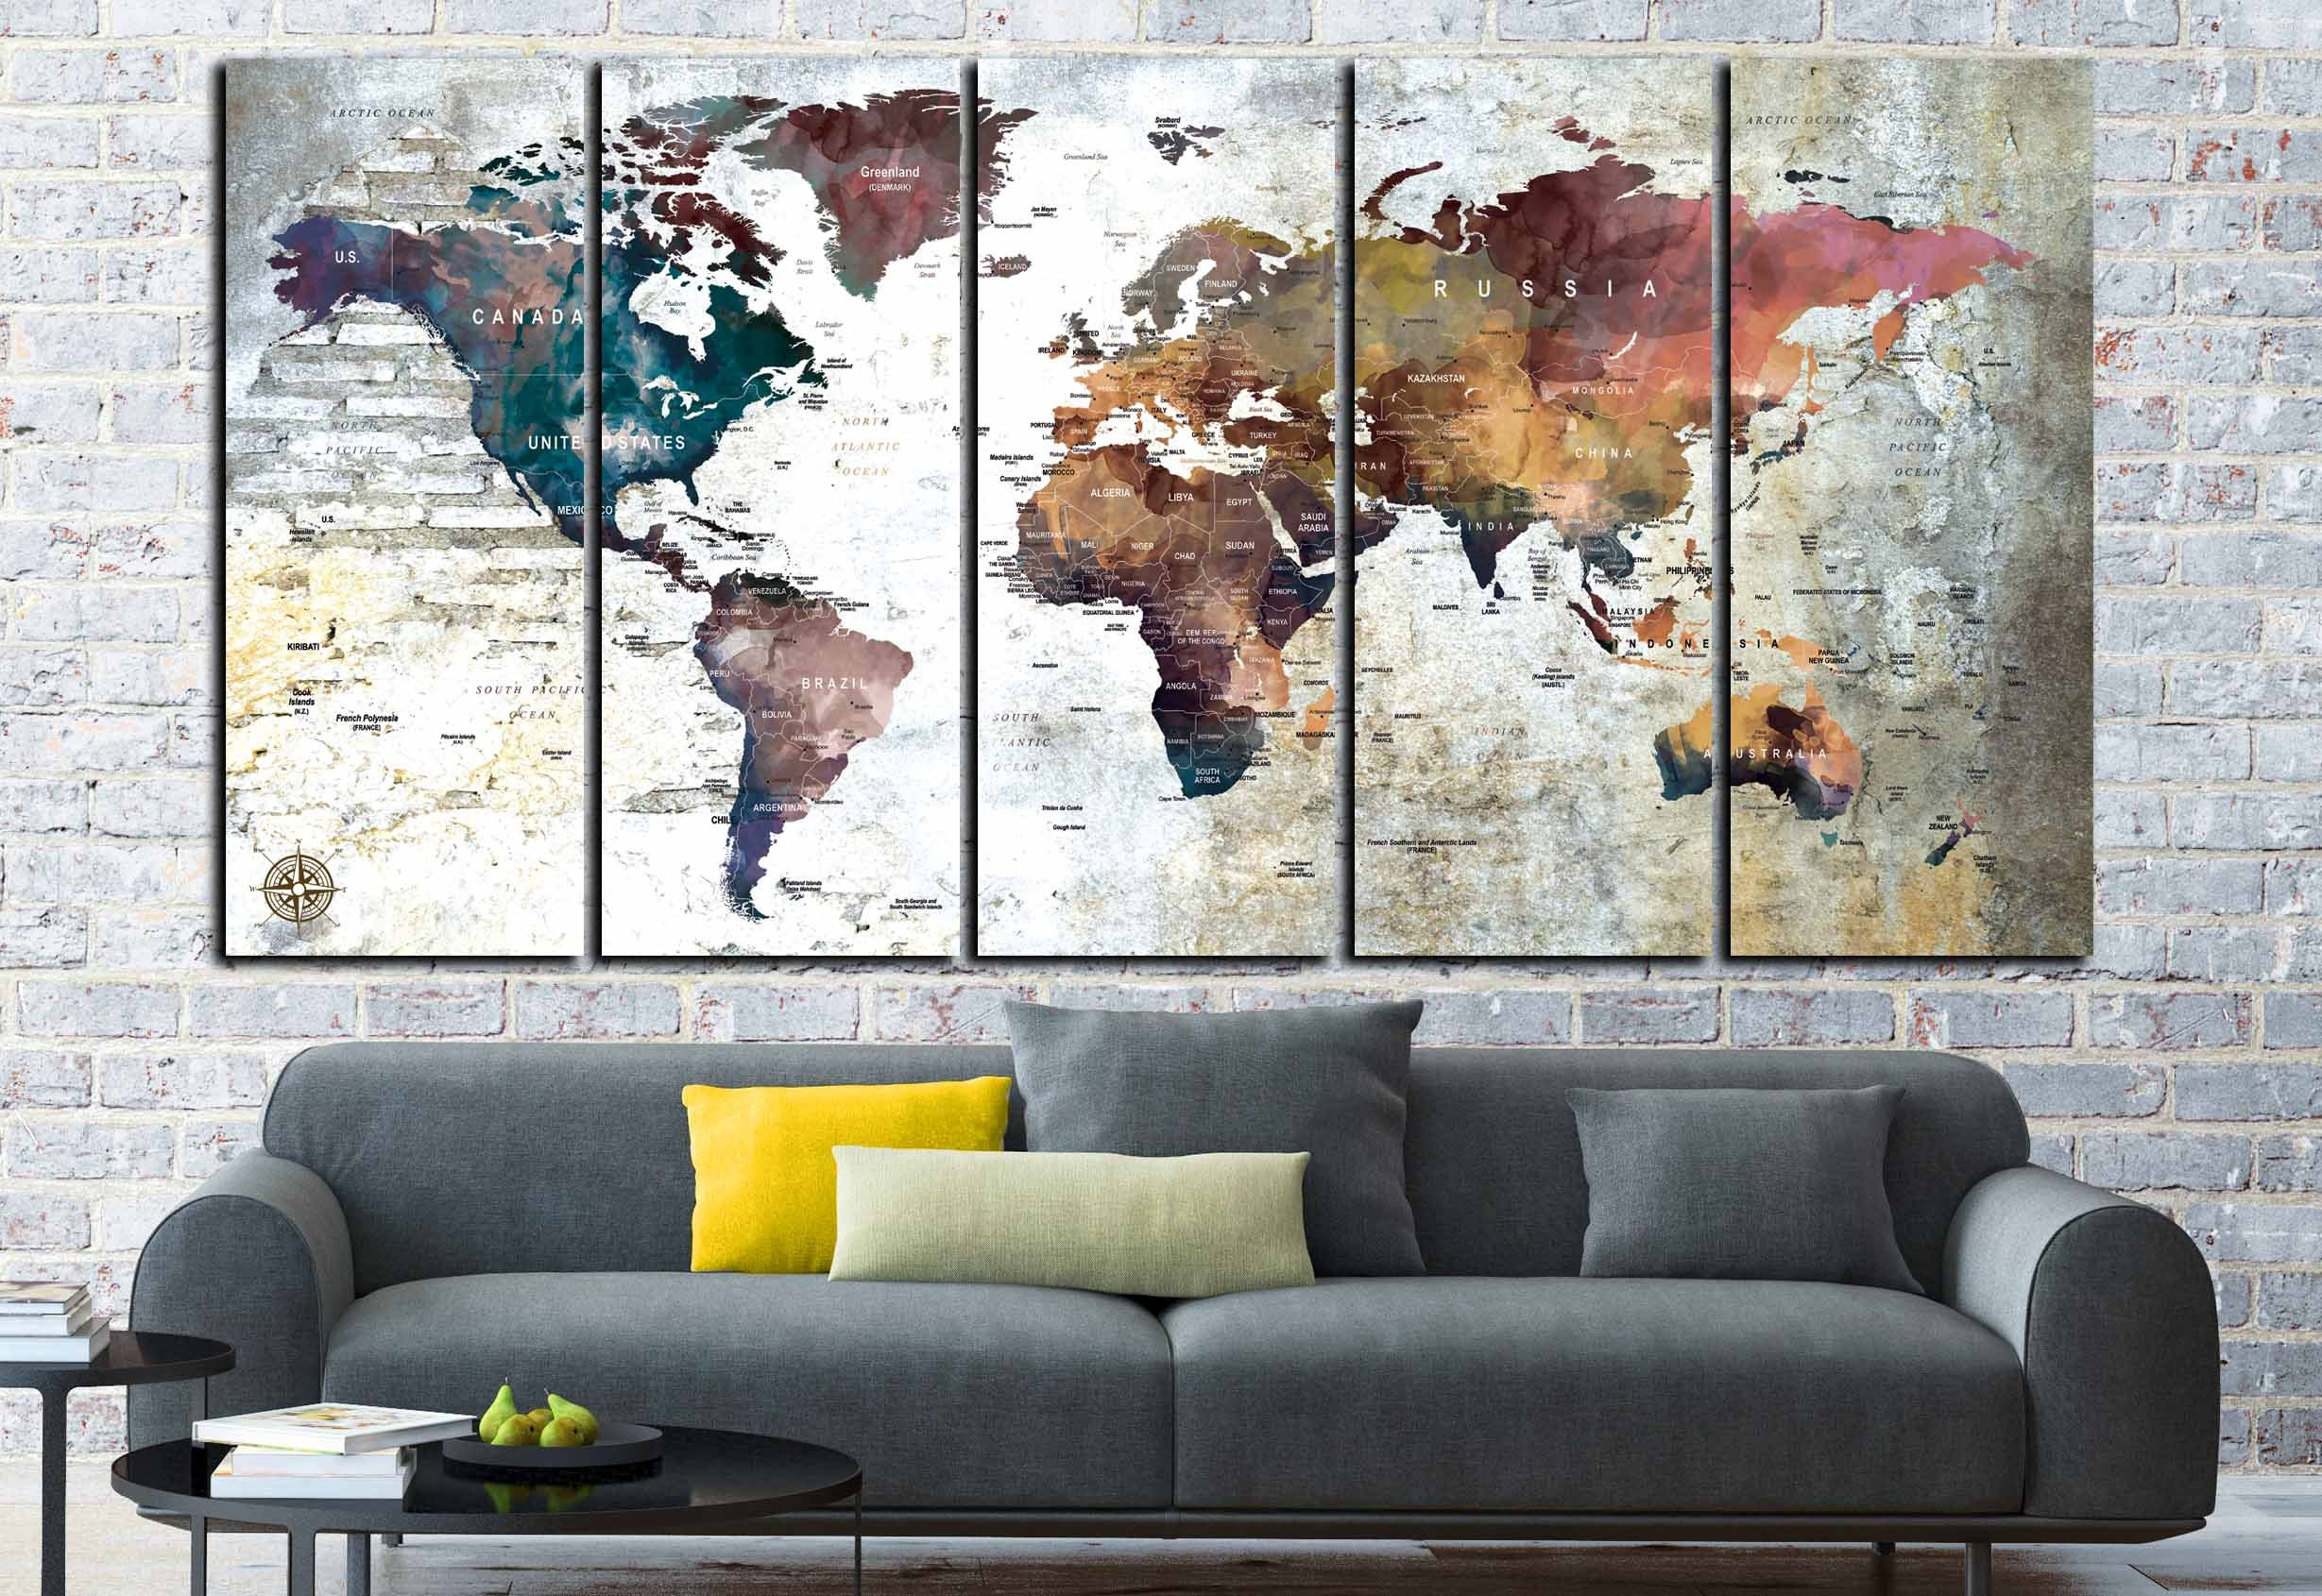 Large world map canvas panelsworld map wall artworld map art large world map canvas panelsworld map wall artworld map artworld map printworld map canvasworld map abstract artworld map vintage publicscrutiny Image collections